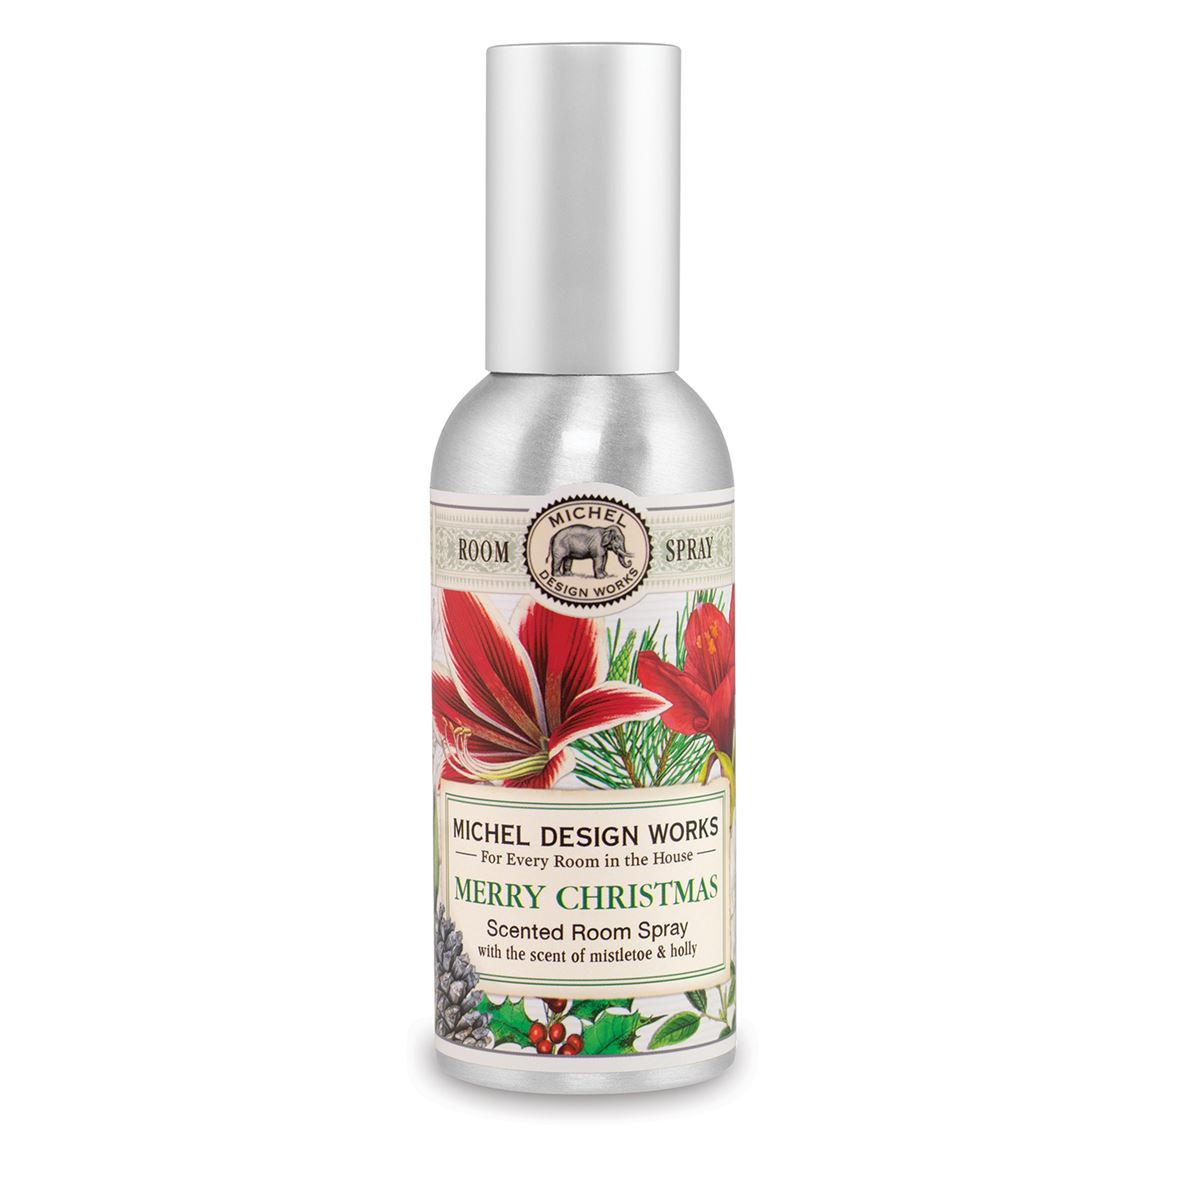 Merry Christmas Scented Room Spray